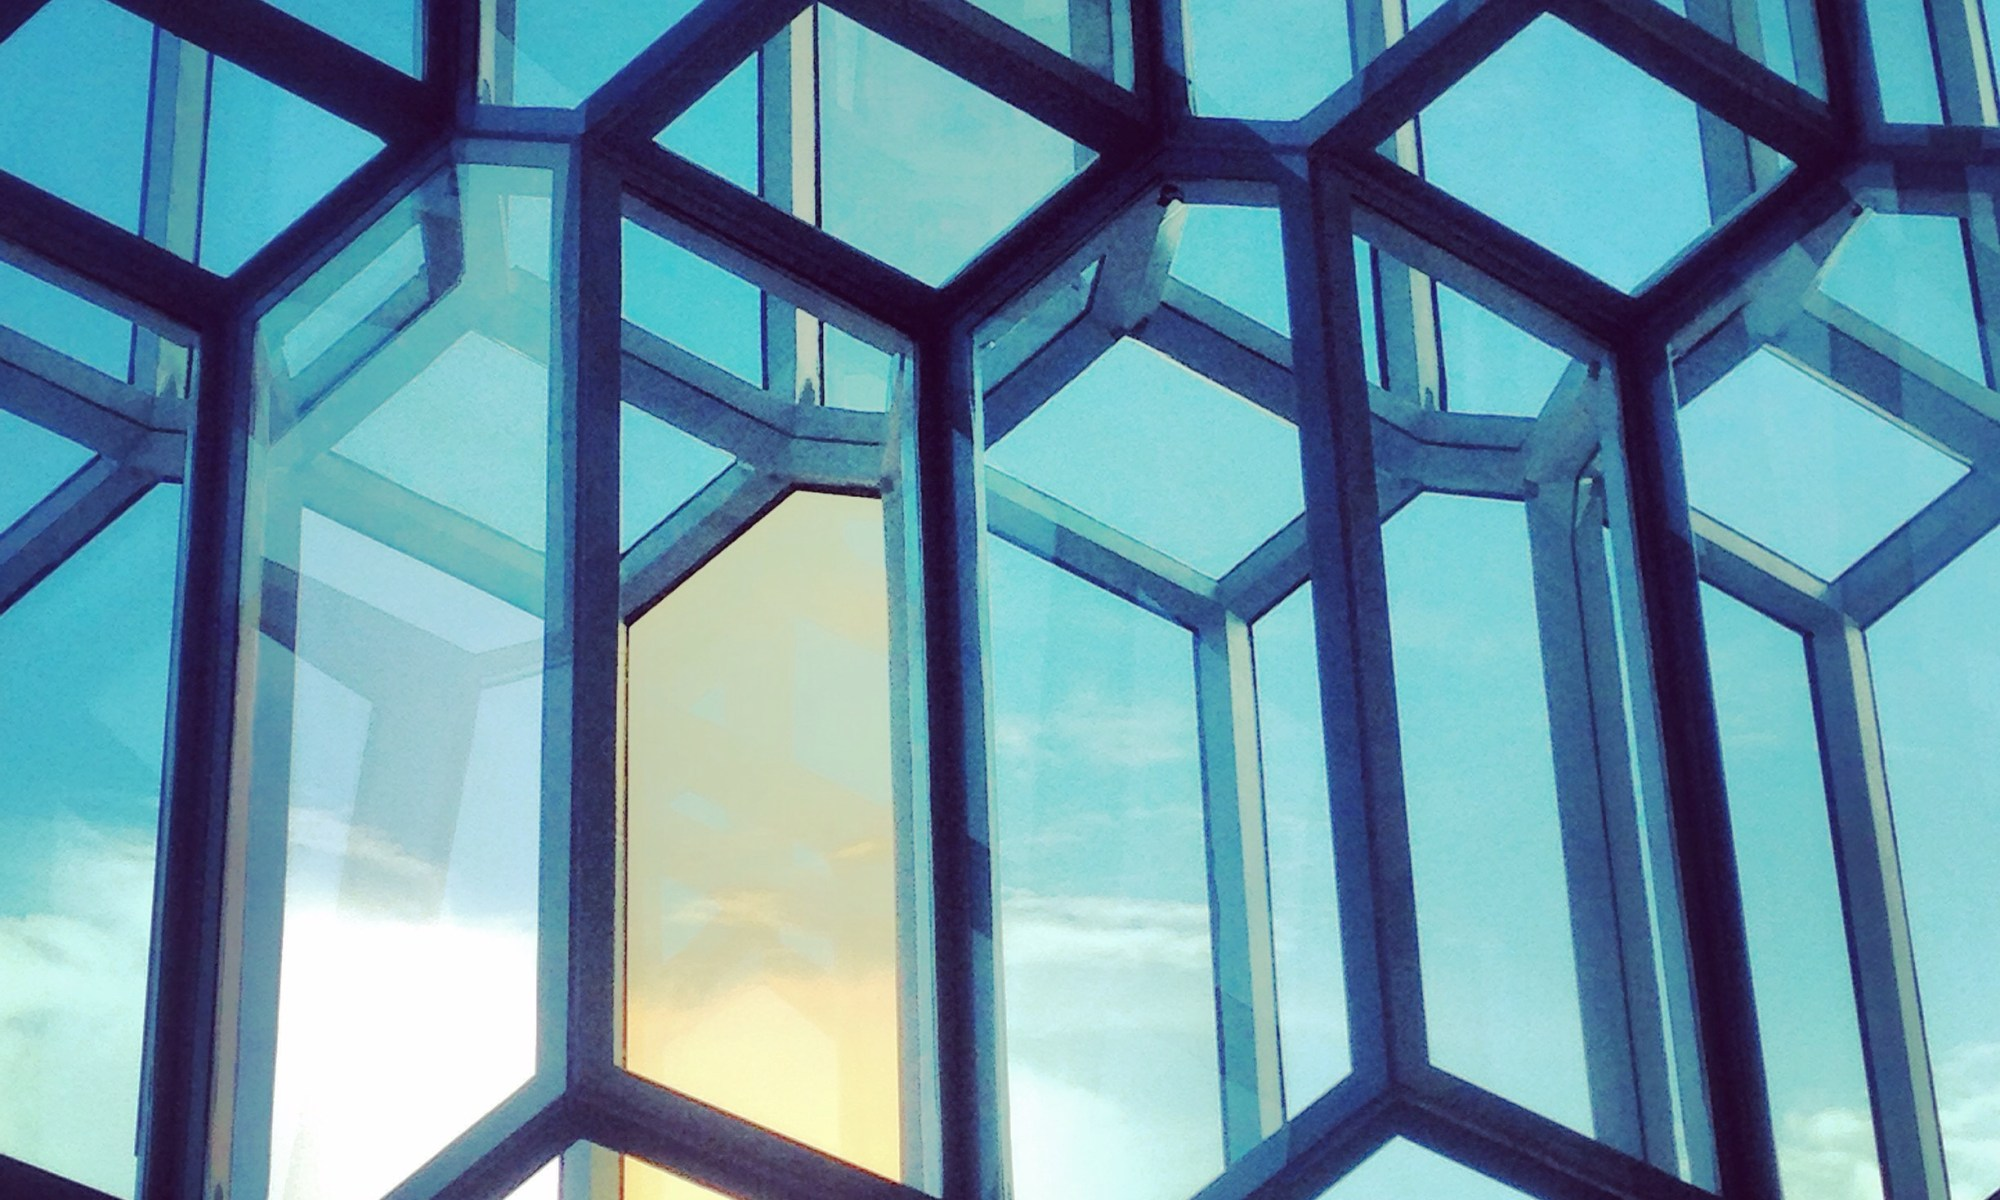 windows of the harpa